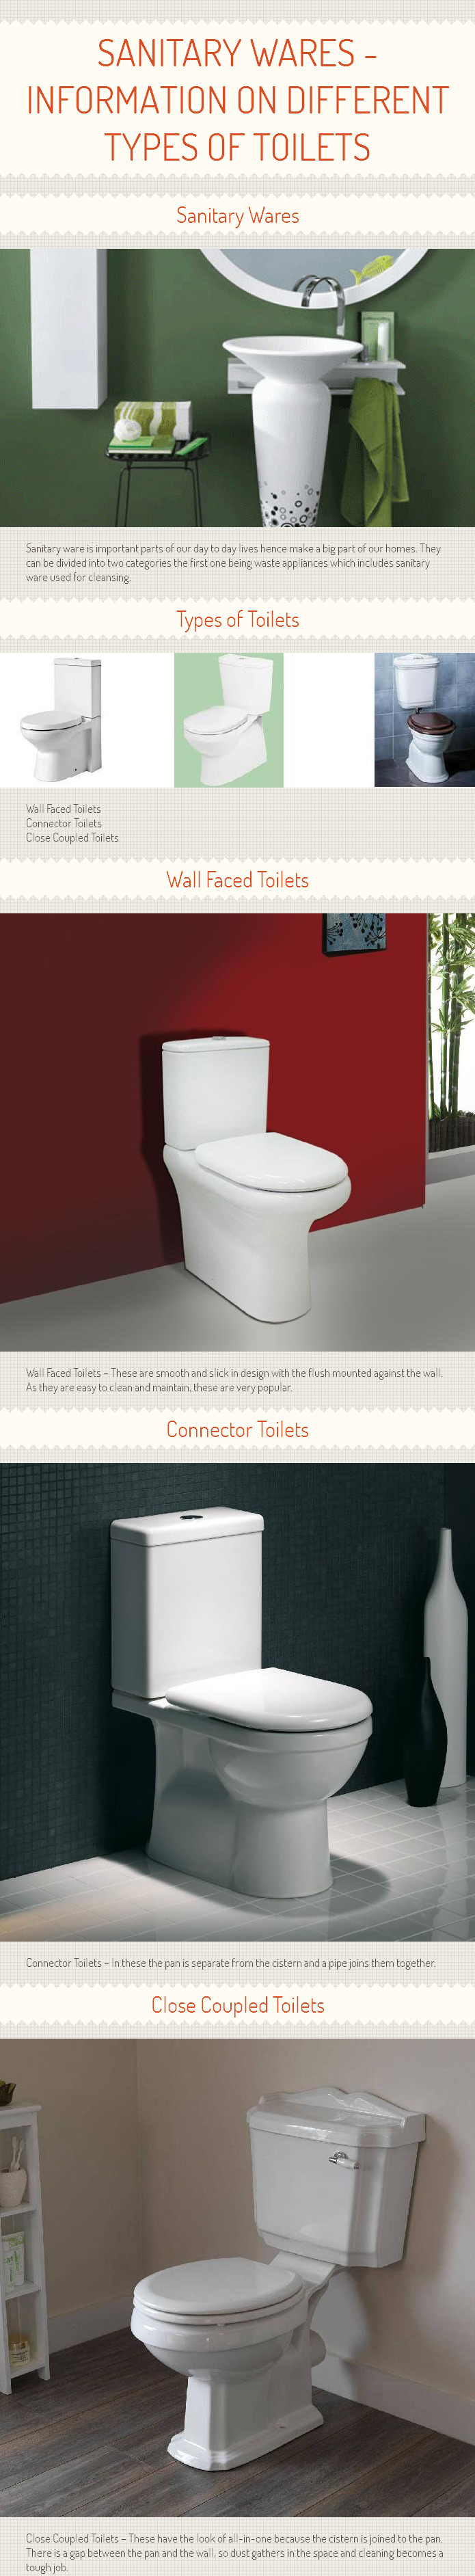 Sanitary Wares - Information on Different Types of Toilets [Infograph]